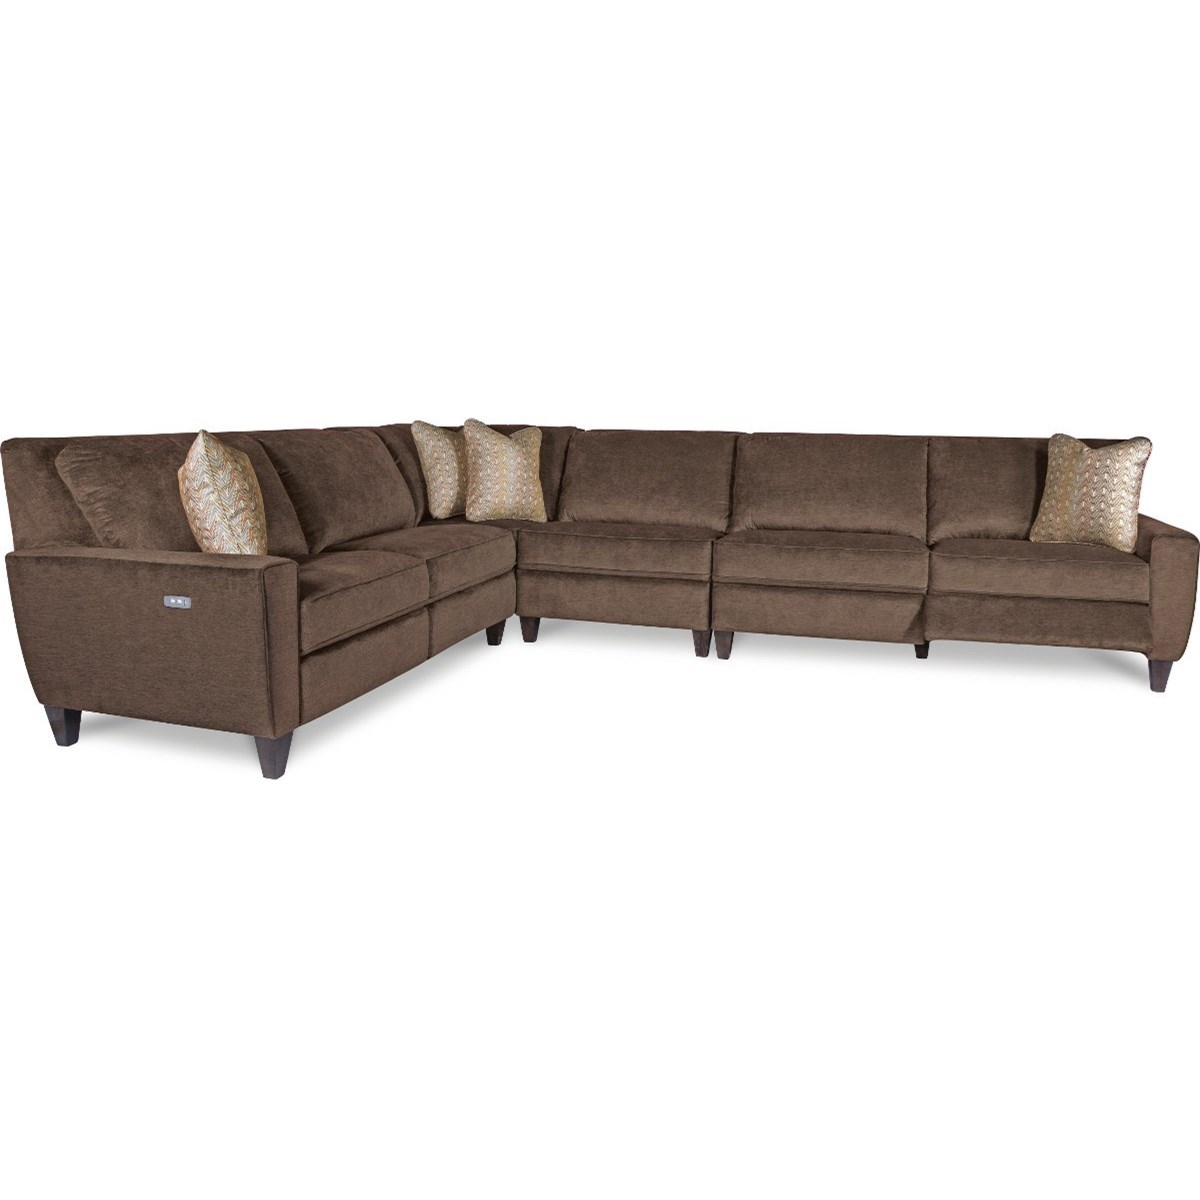 Four Piece Power Reclining Sectional Sofa with Two Reclining Chairs and Two USB Charging Ports